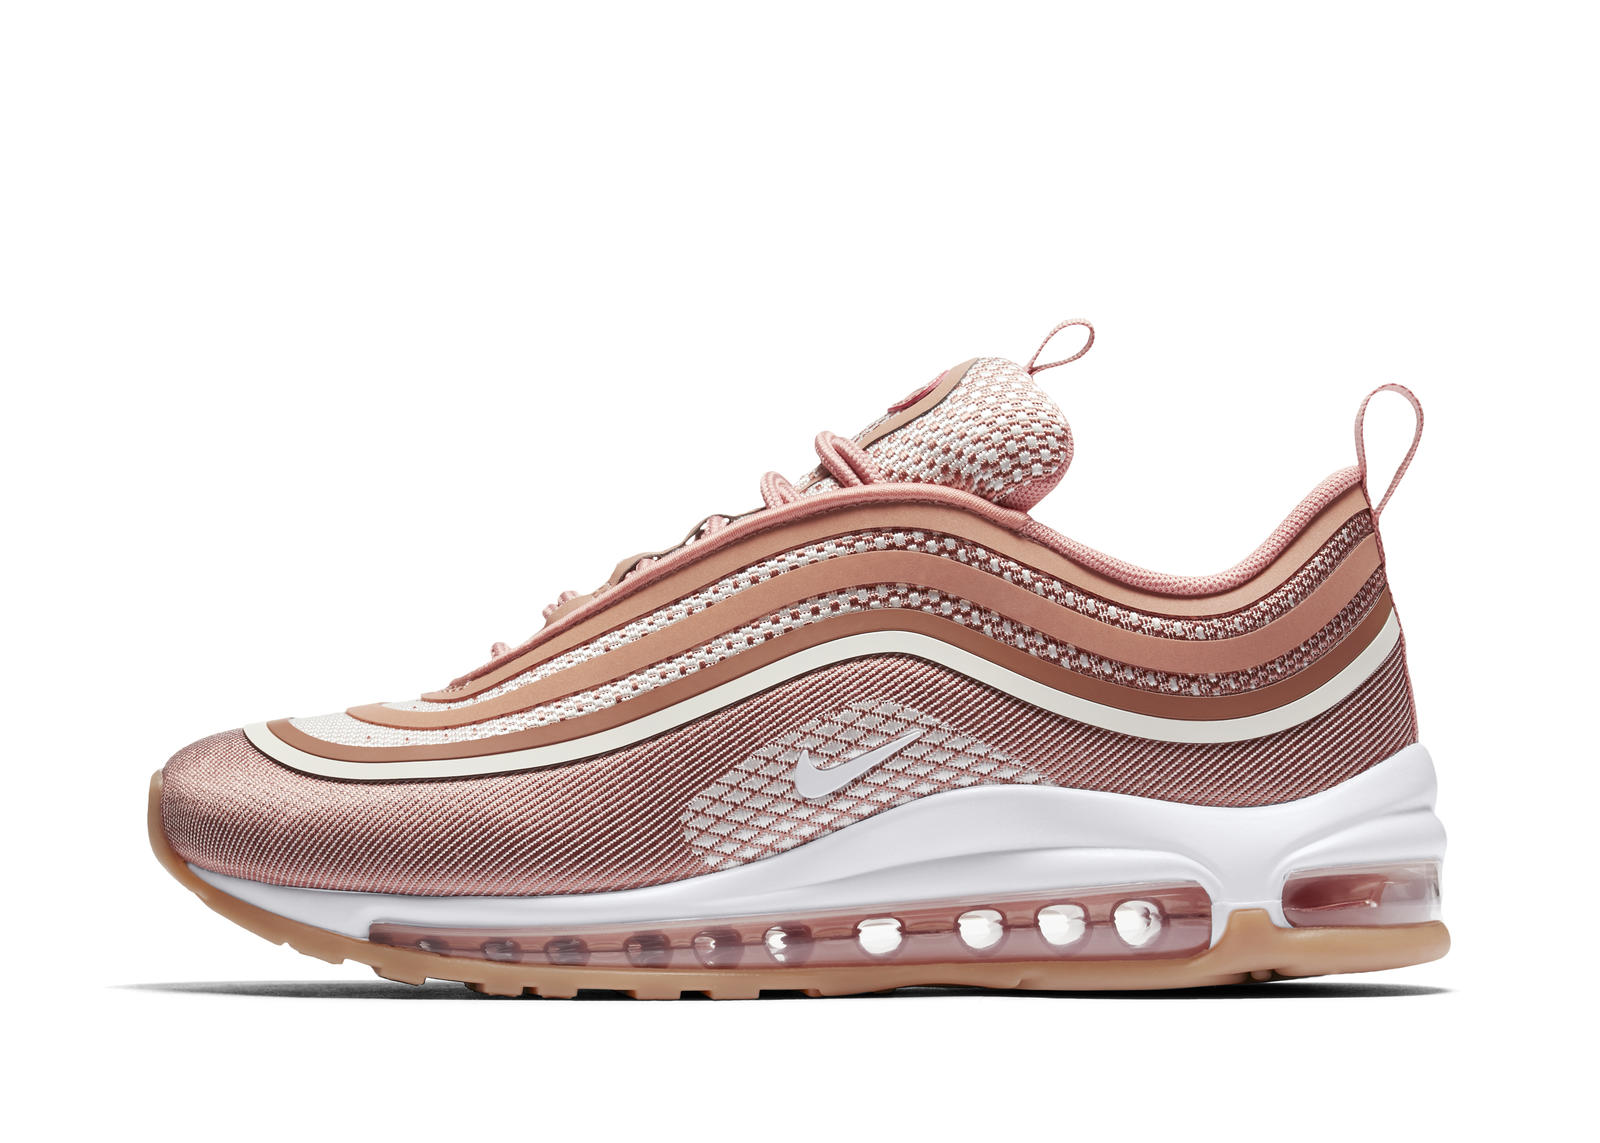 nike air max 97 release guide for fall 10 colorways to celebrate 20 years weartesters. Black Bedroom Furniture Sets. Home Design Ideas